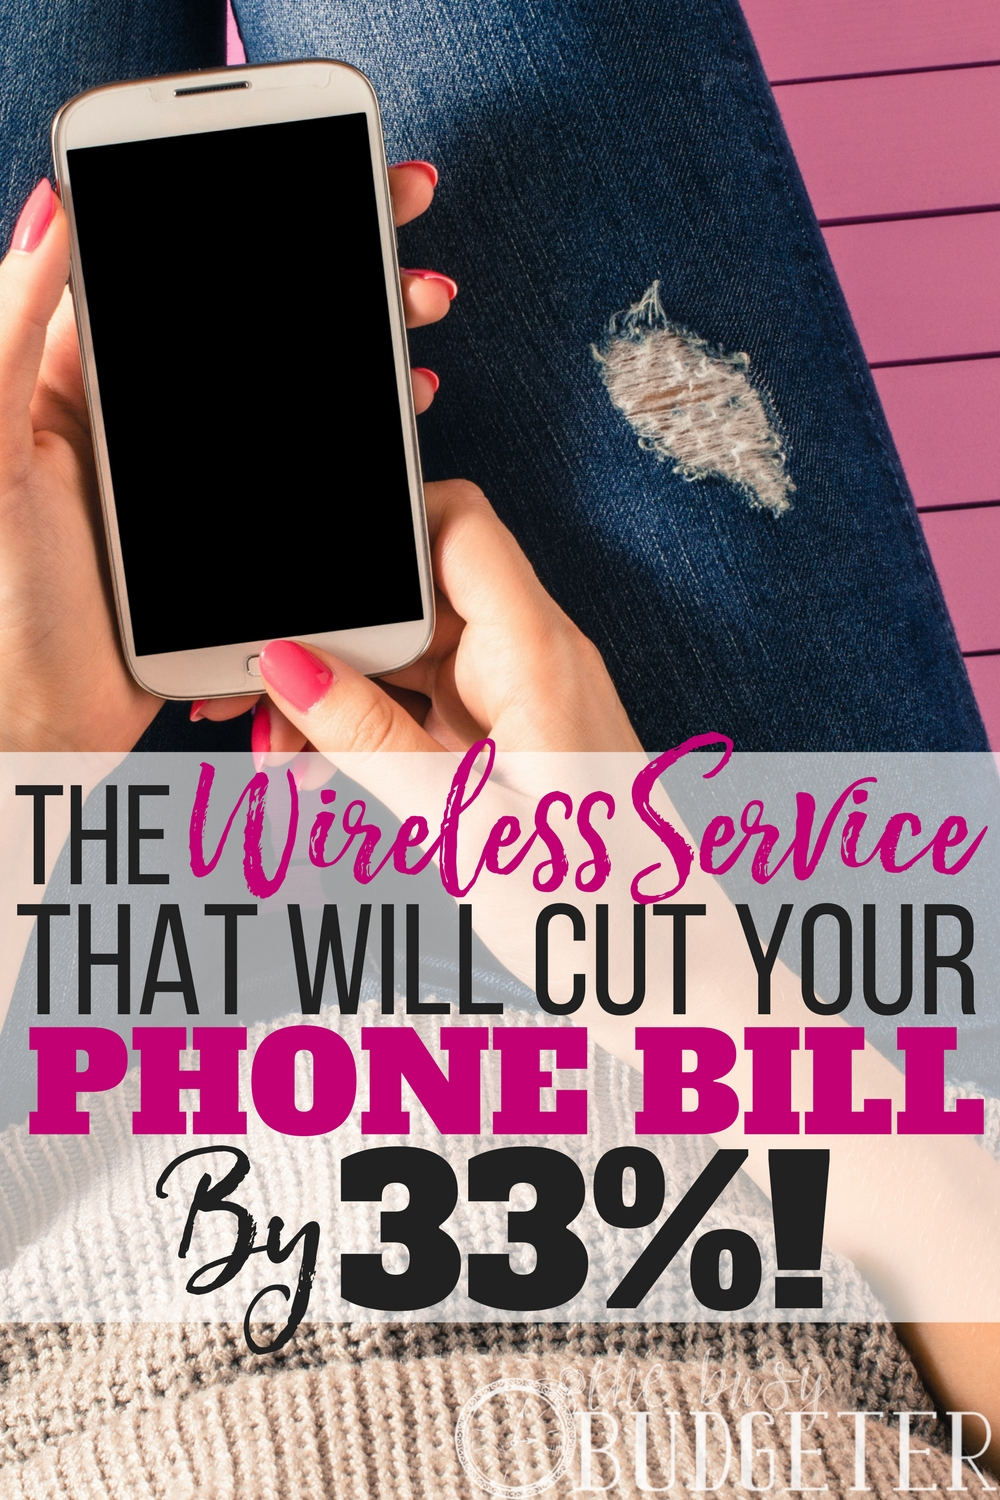 Wow! Republic Wireless really is the perfect solution for cutting down my monthly phone bill by a third! Their plans are affordable and fit my family needs perfectly! Cannot recommend Republic Wireless more!